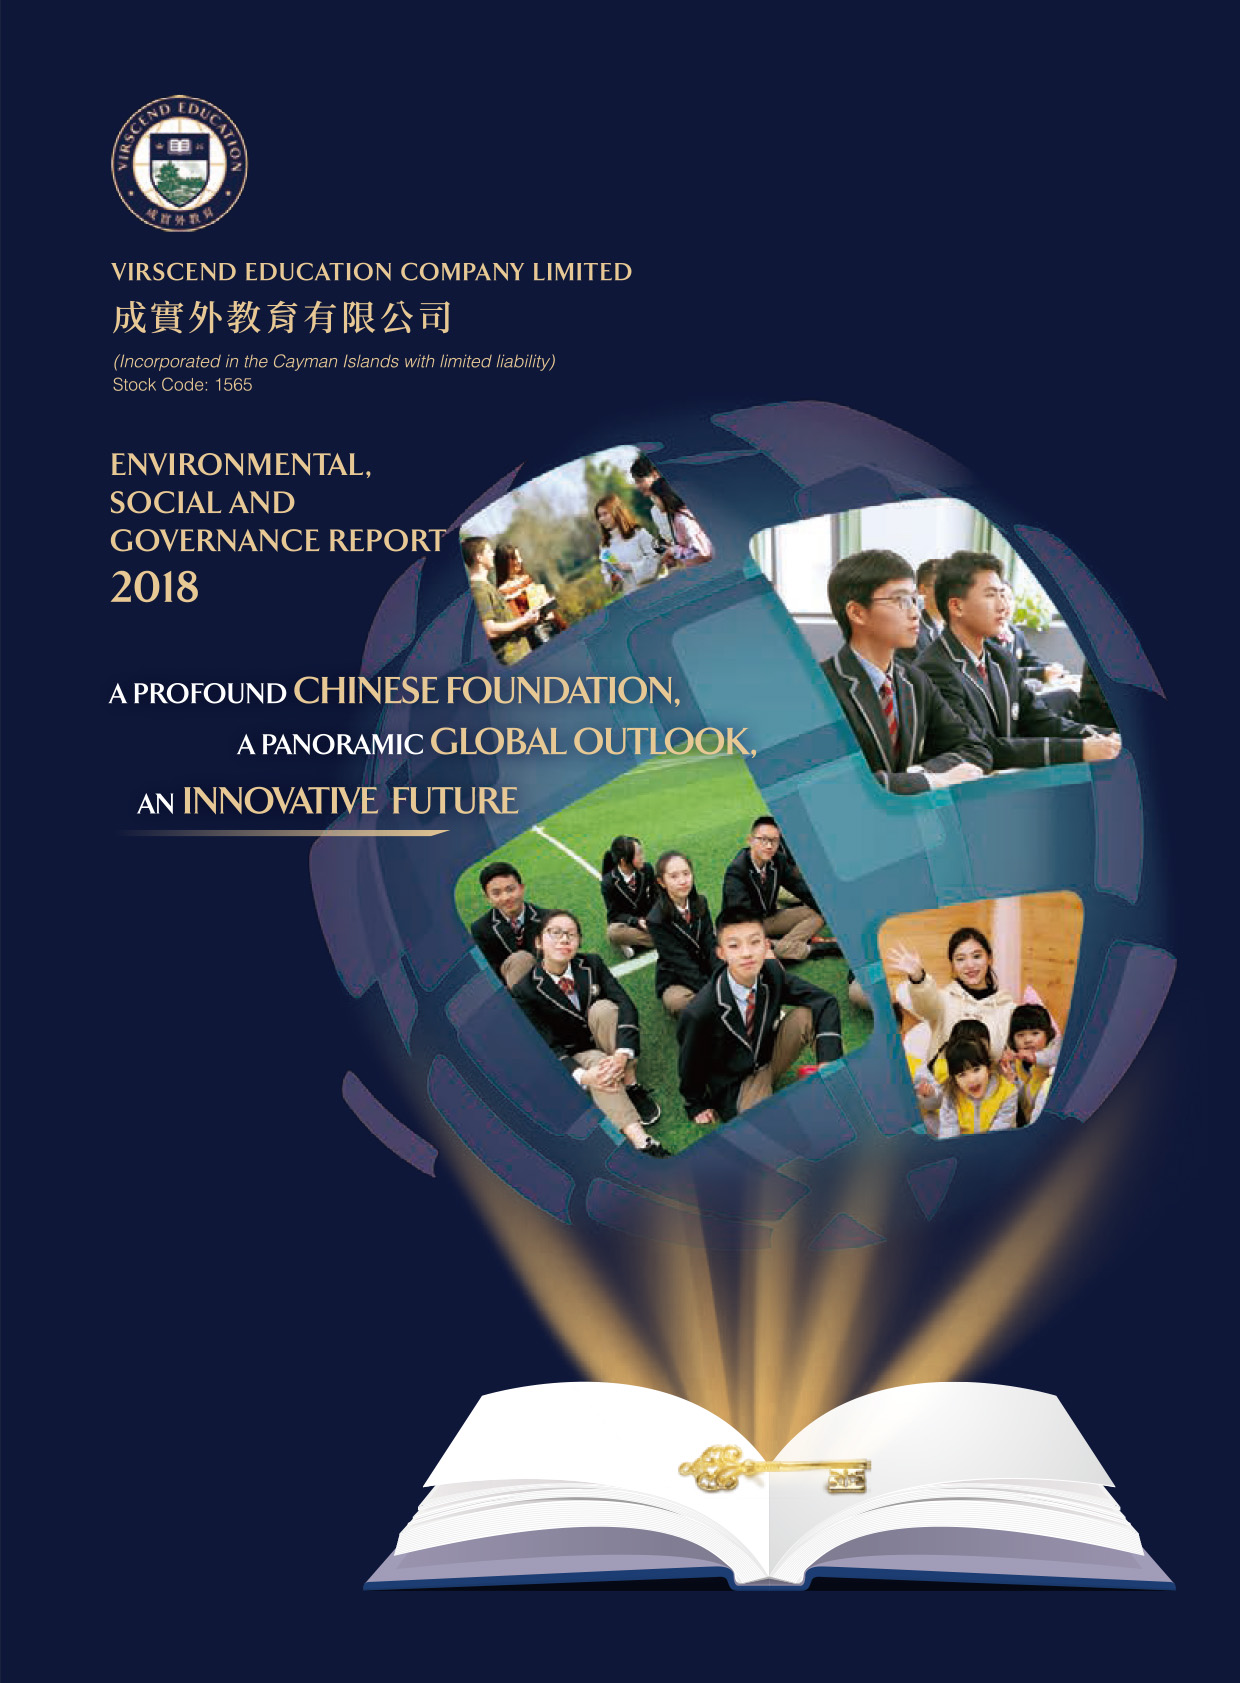 VIRSCEND EDUCATION COMPANY LIMITED ESG